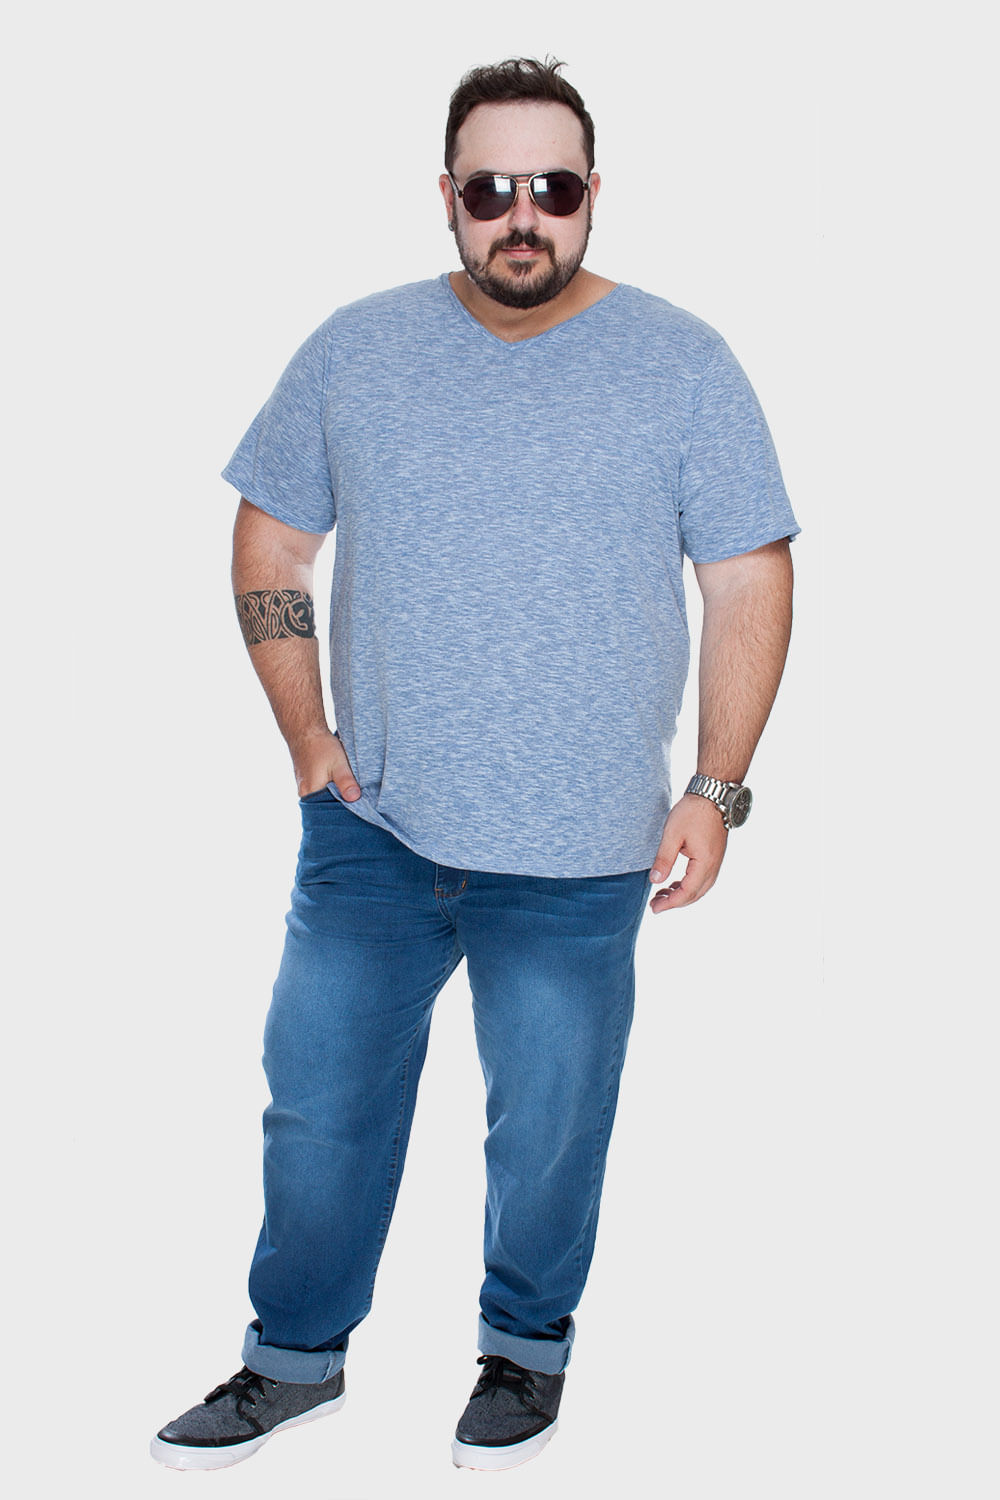 Calca-Jeans-Casual-Plus-Size_T1